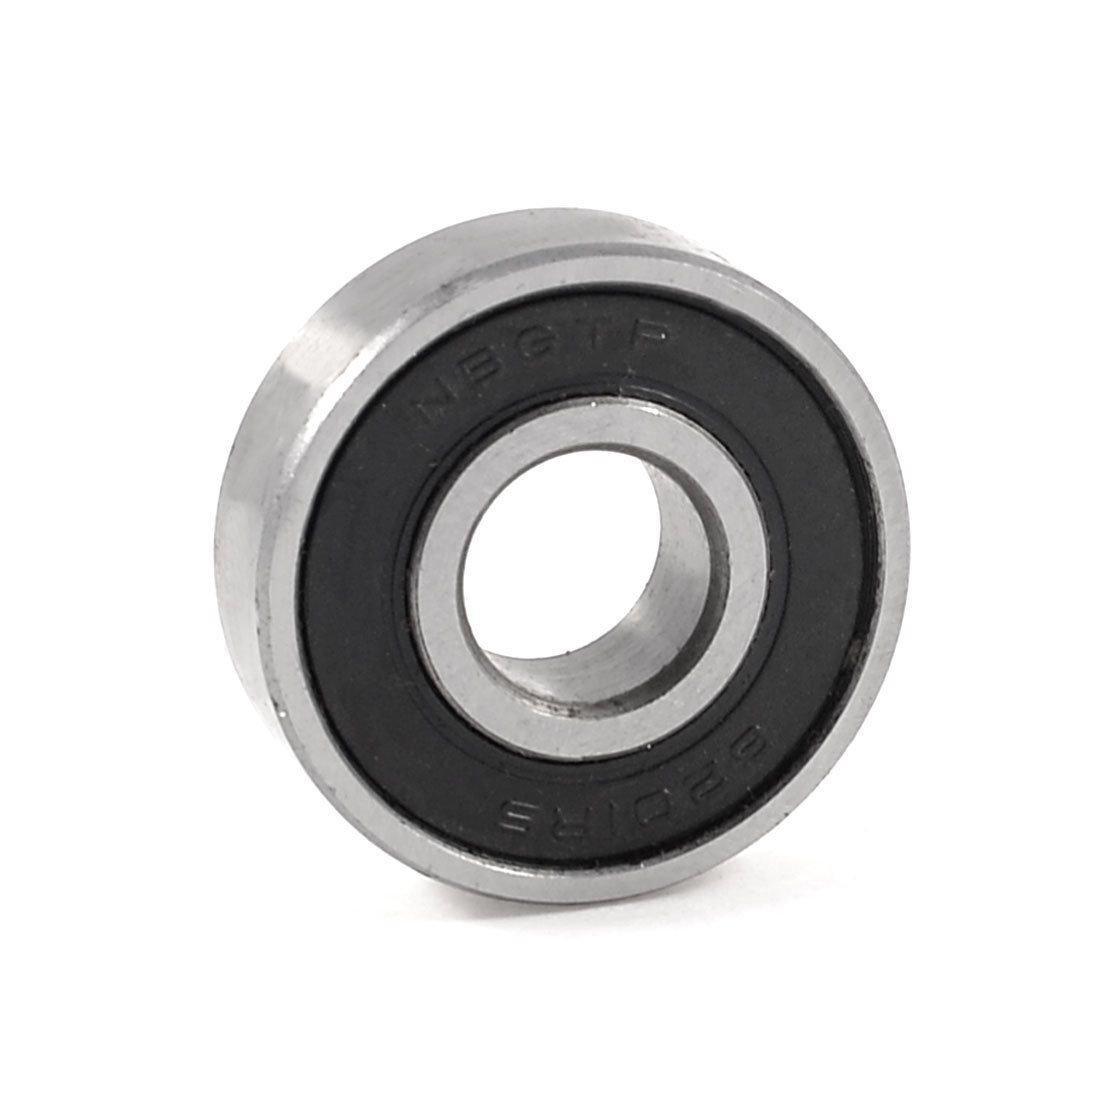 6201RS Shielded Deep Groove Ball Bearing 32mm x 12mm x 10mm Sourcingmap a13050600ux0298